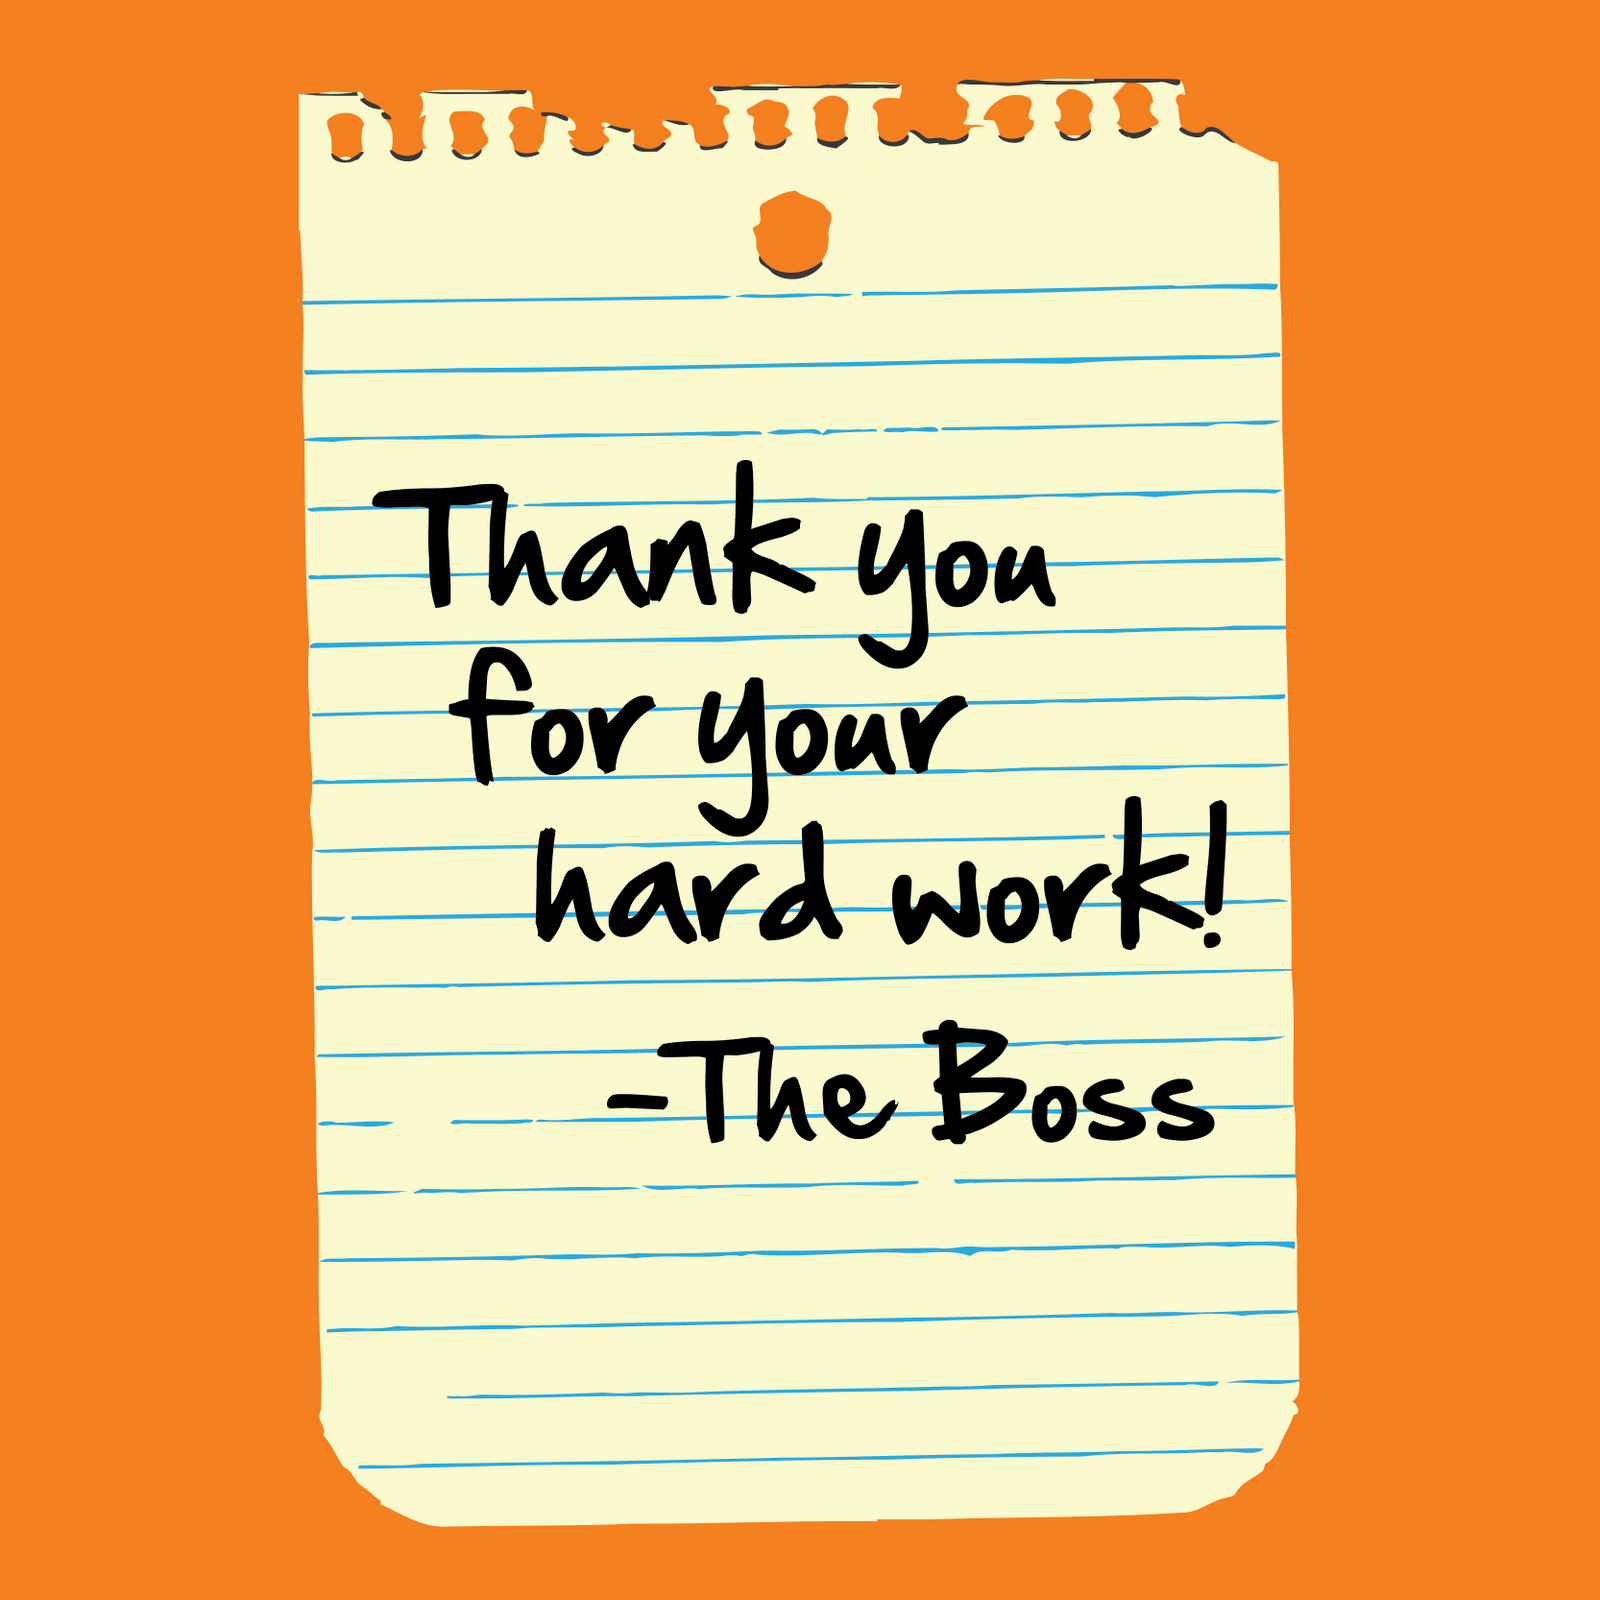 Quotes About Thank You For Support: Quotes To Thank Support Staff. QuotesGram